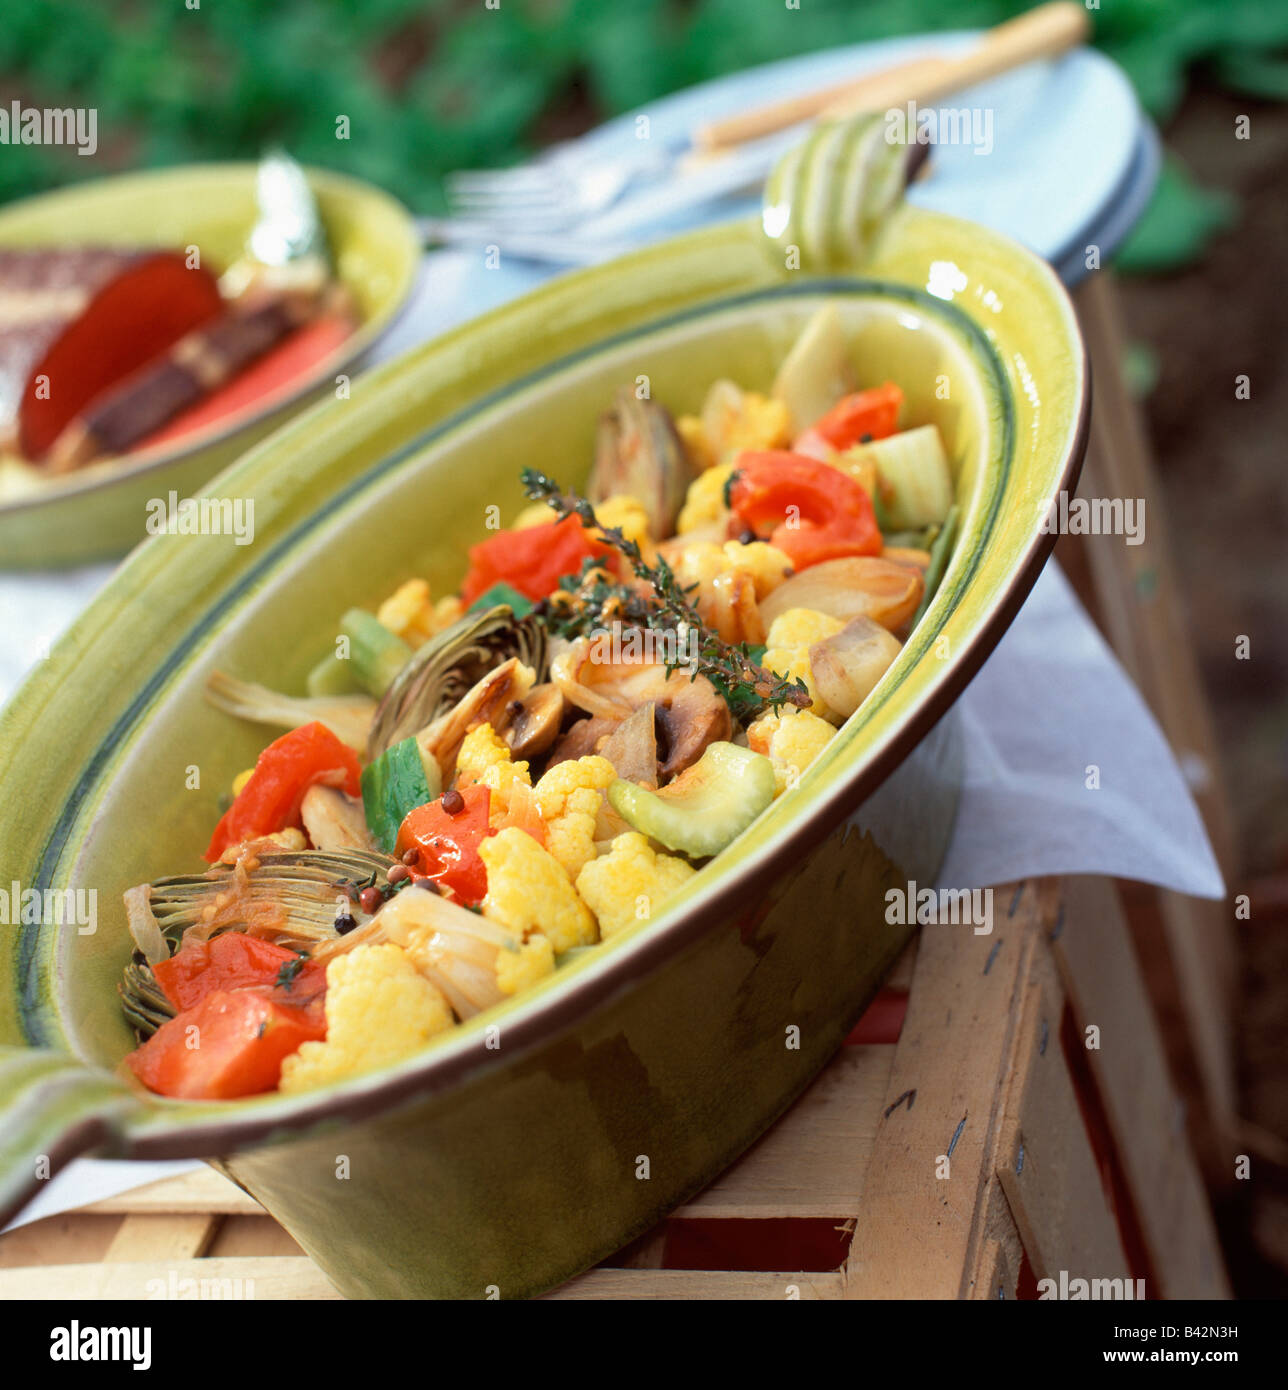 Jardiniere Of Young Vegetables Stock Photo 19729461 Alamy